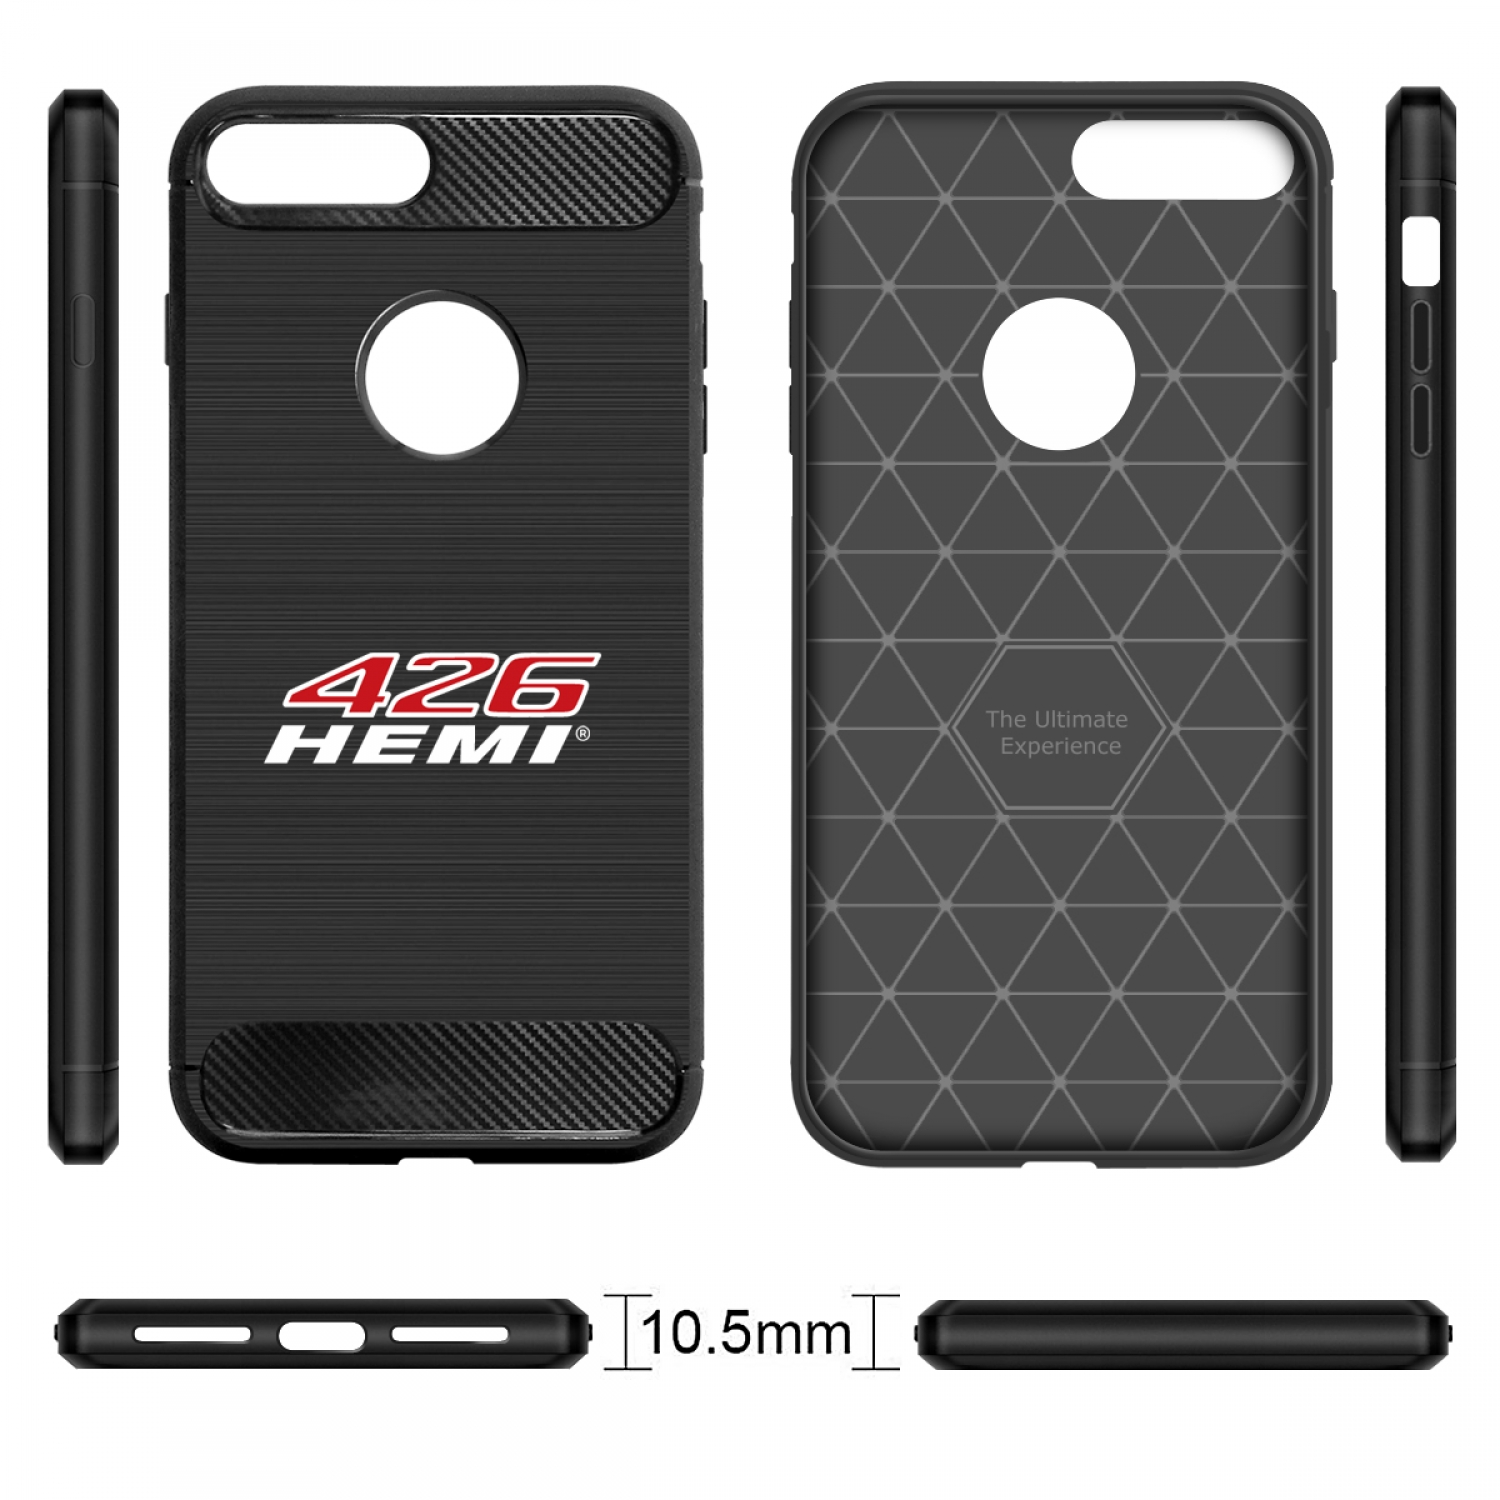 iPhone 7 Plus Case, HEMI 426 HP Black TPU Shockproof Carbon Fiber Textures Cell Phone Case